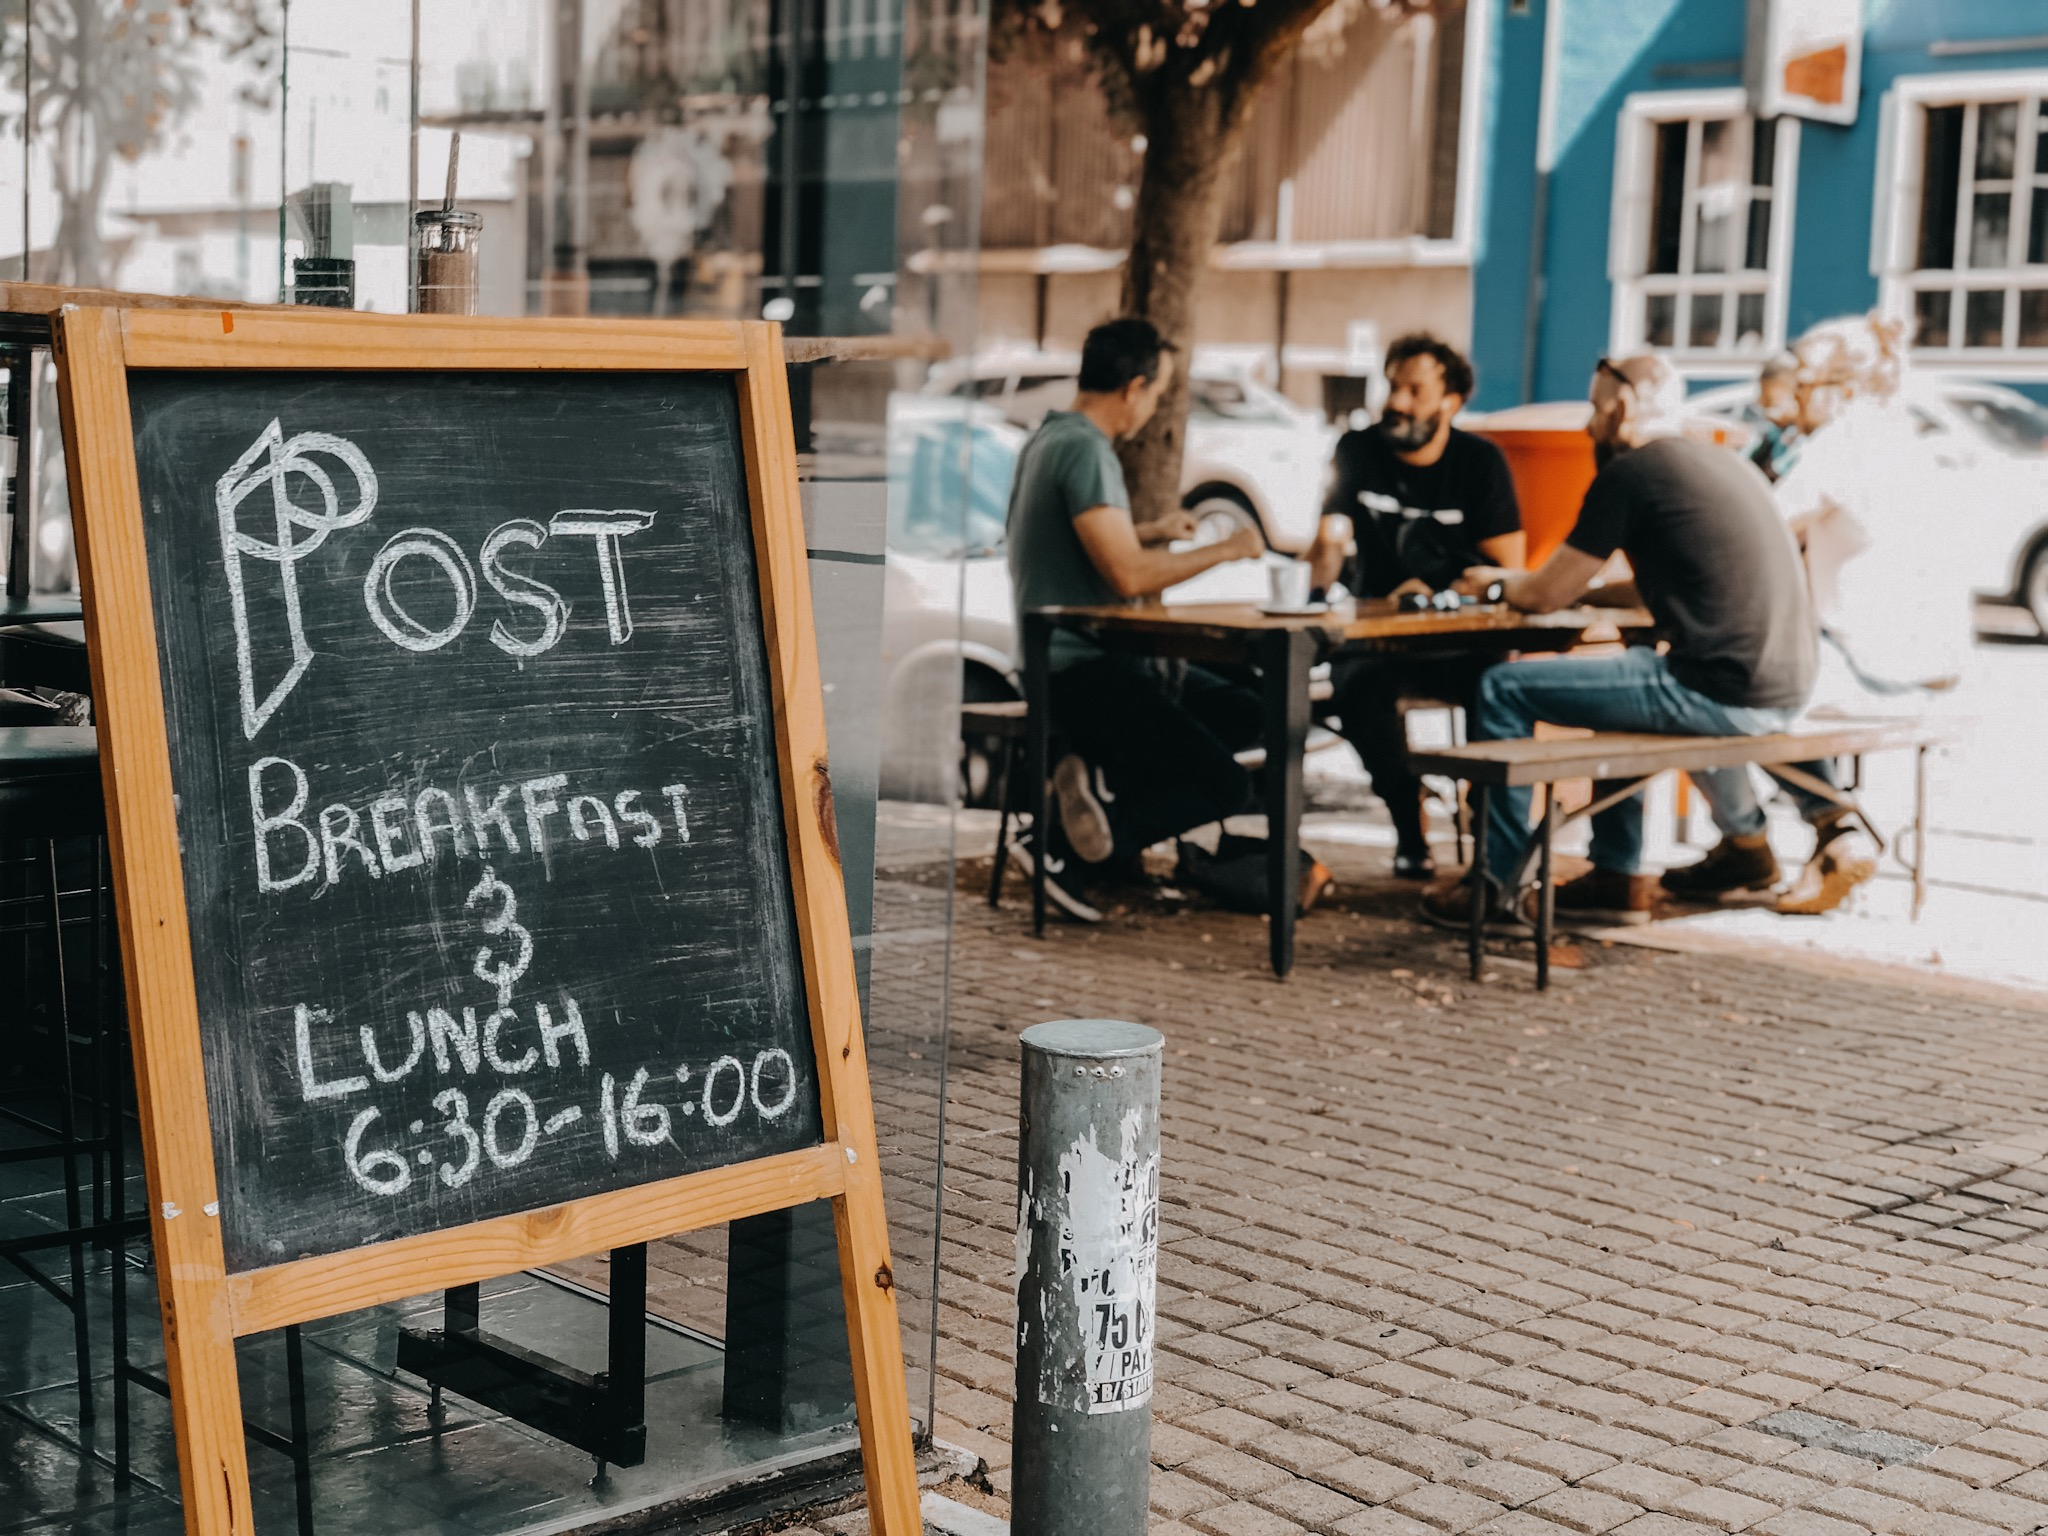 Last Saturday's of the month - meet us at POst B&L in braamfontein from 8-10am for breakfast and coffee and we'll head out on a ride afterwards.